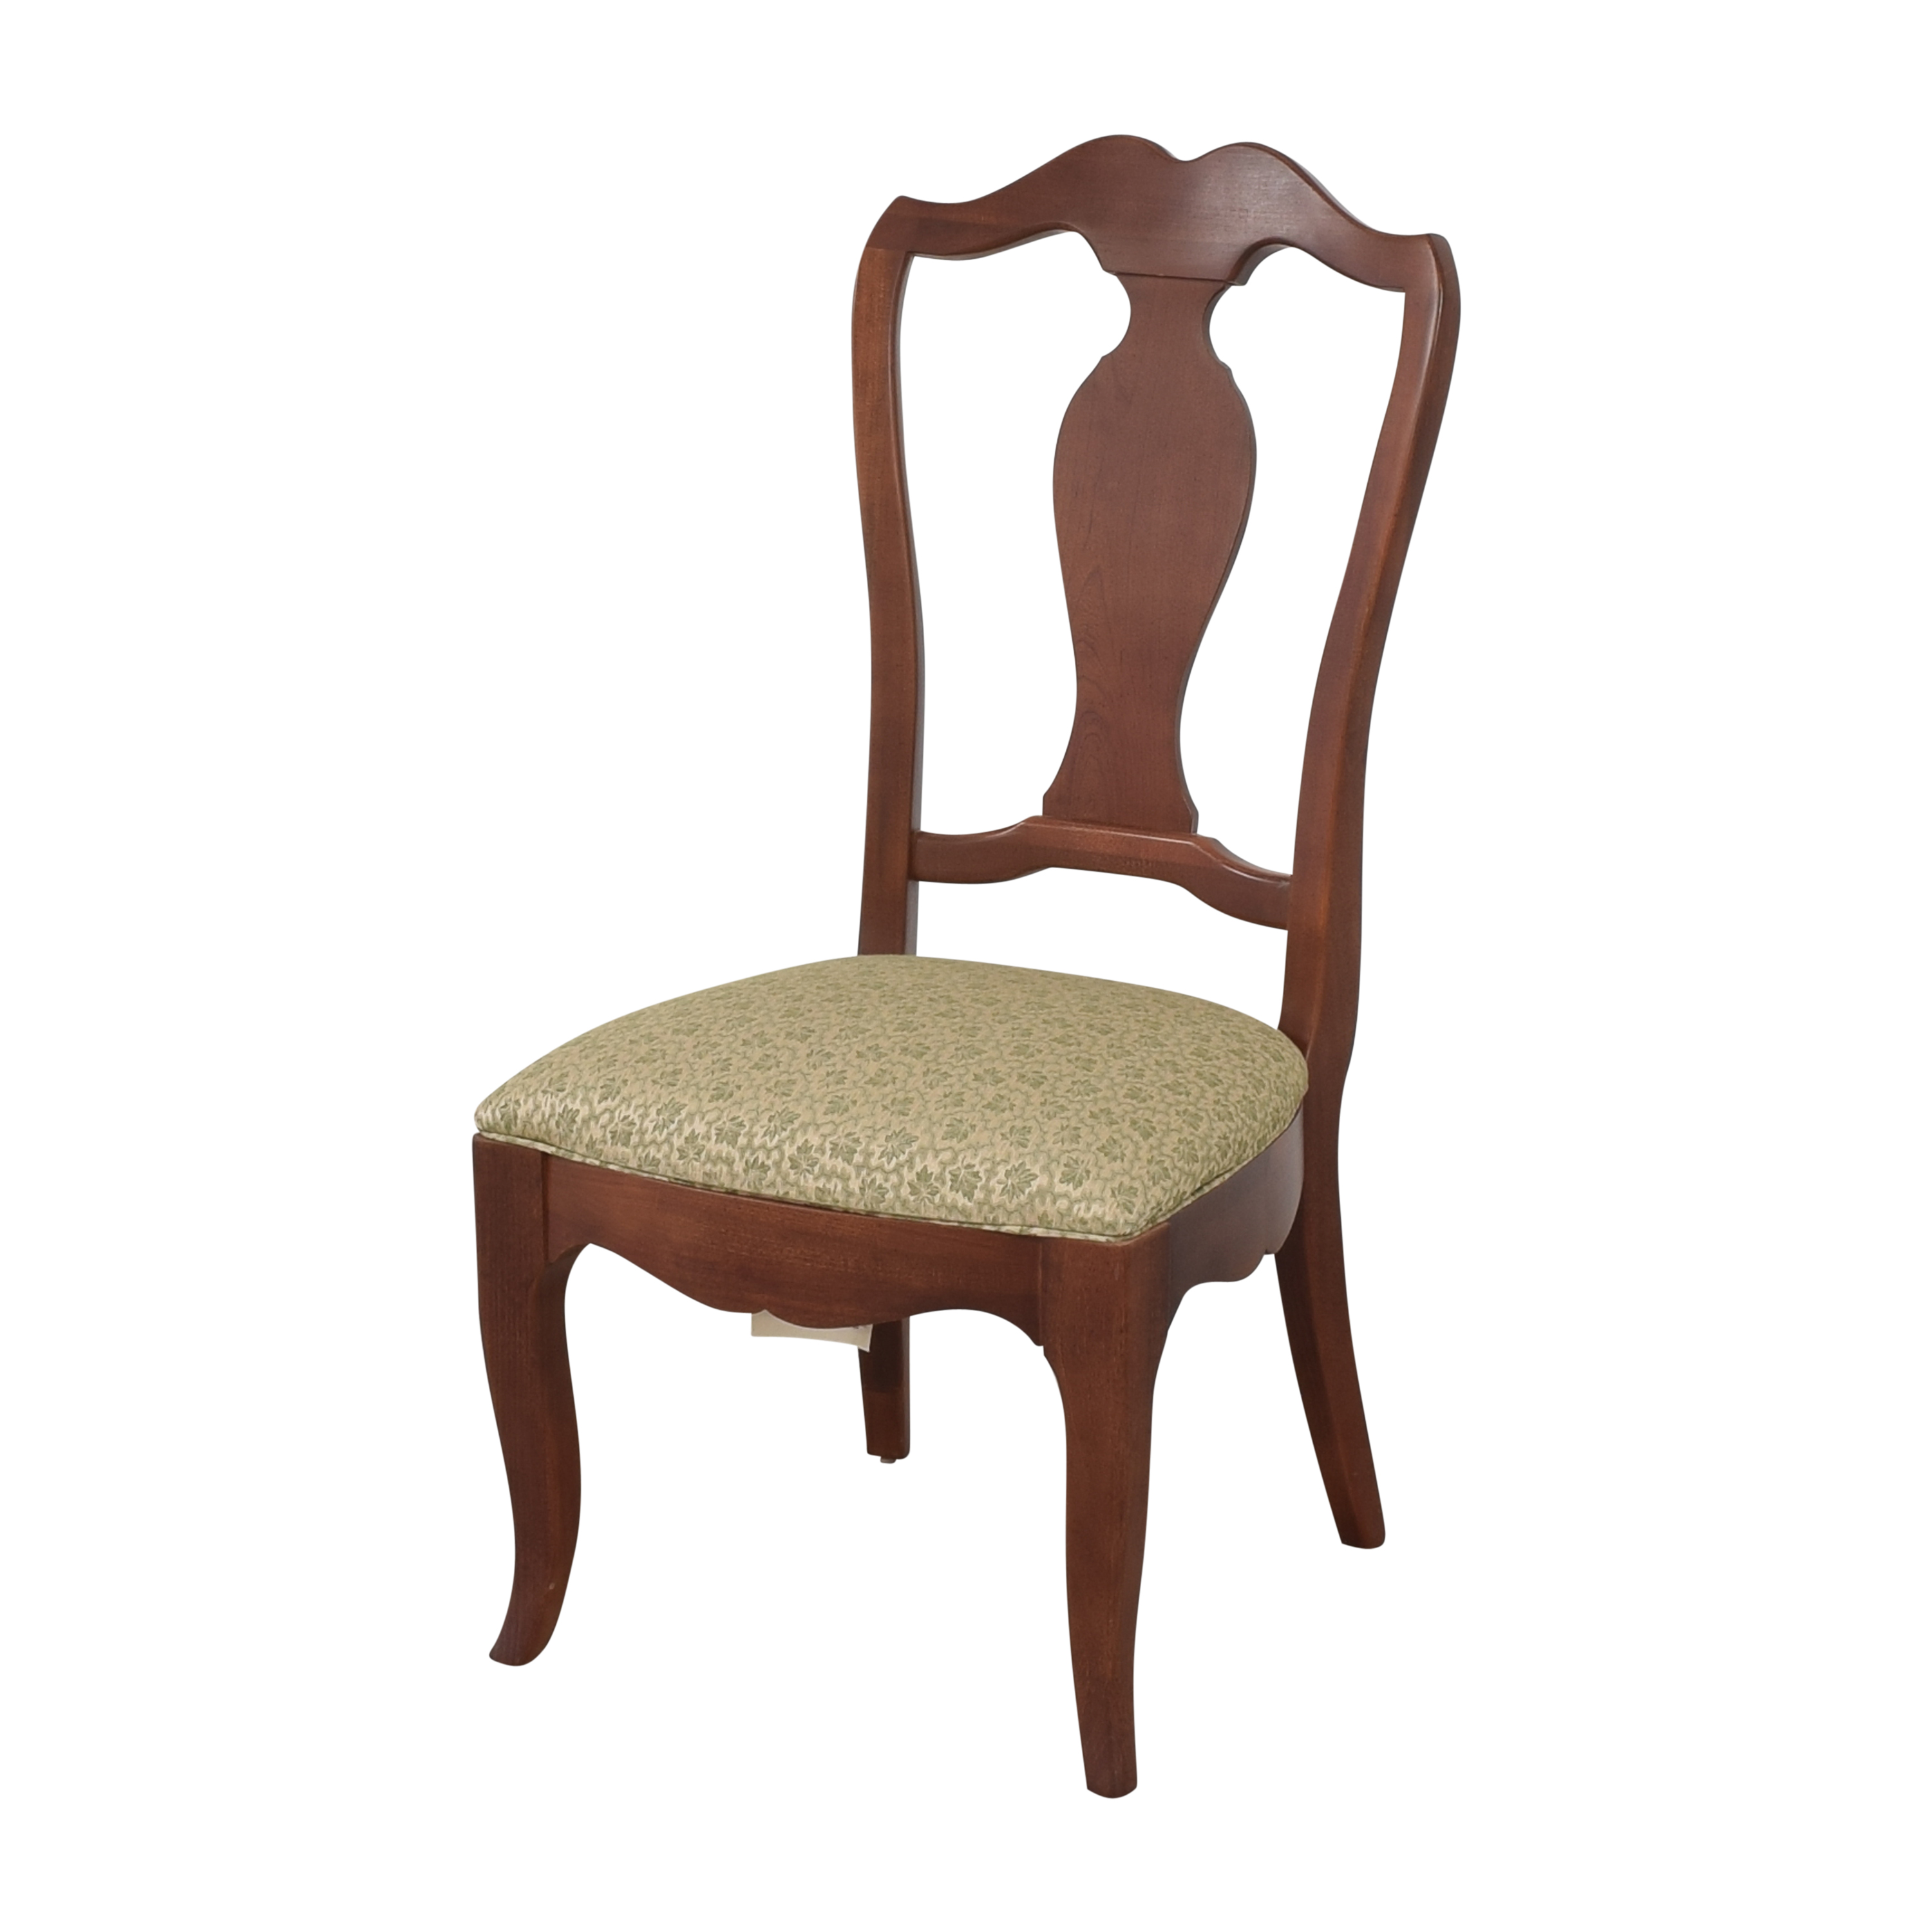 shop Thomasville Thomasville Upholstered Dining Chairs online